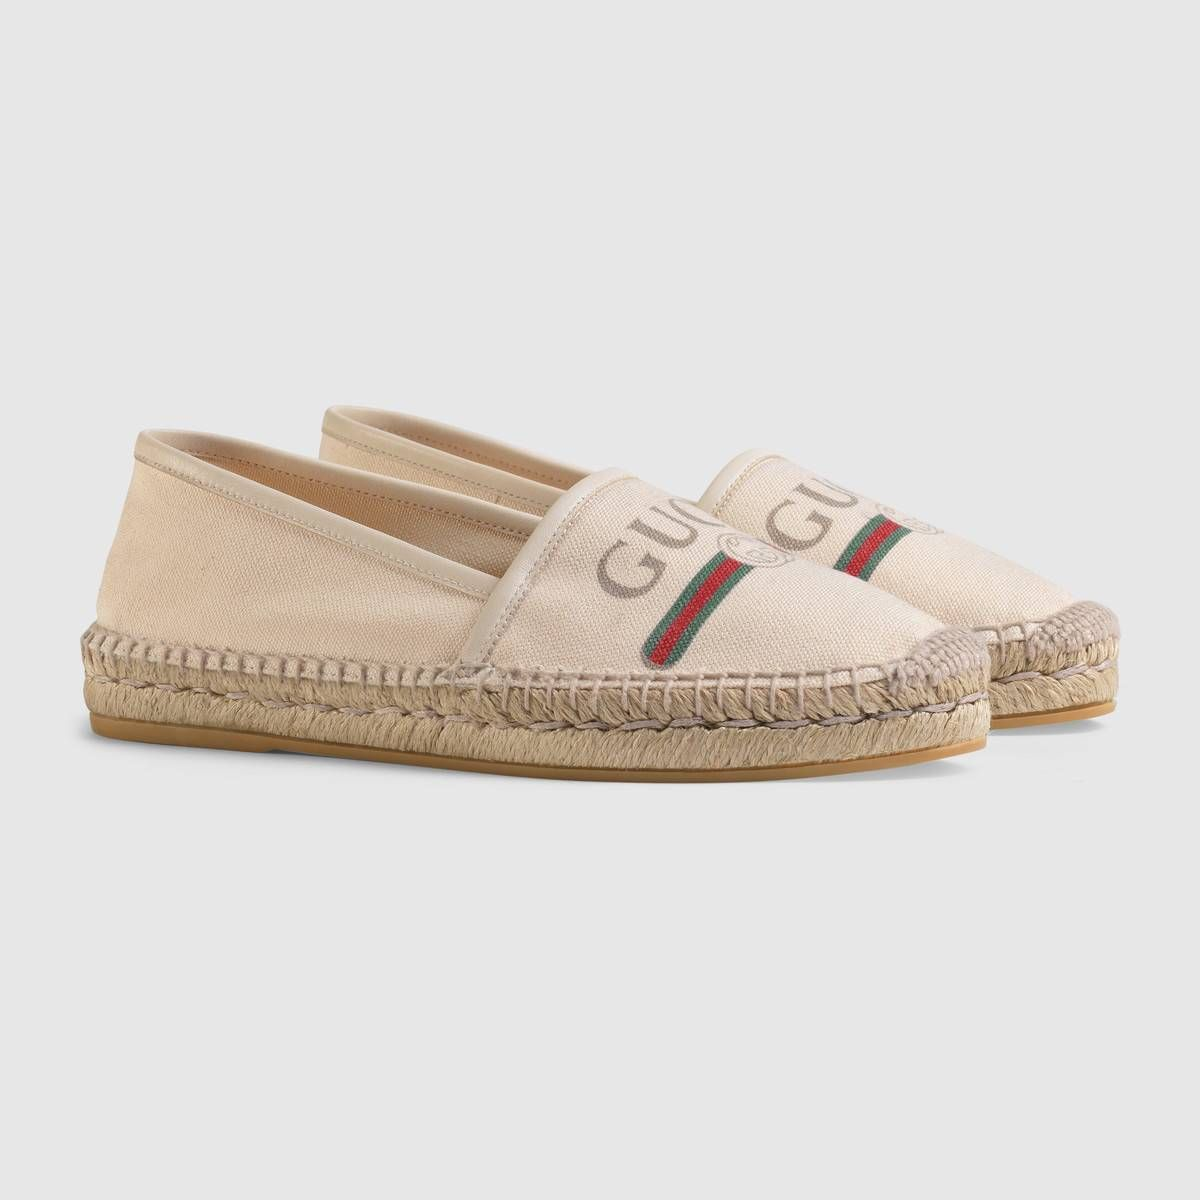 e1812d055f5 Shop the Gucci logo canvas espadrille by Gucci. A reference to vintage  prints from the